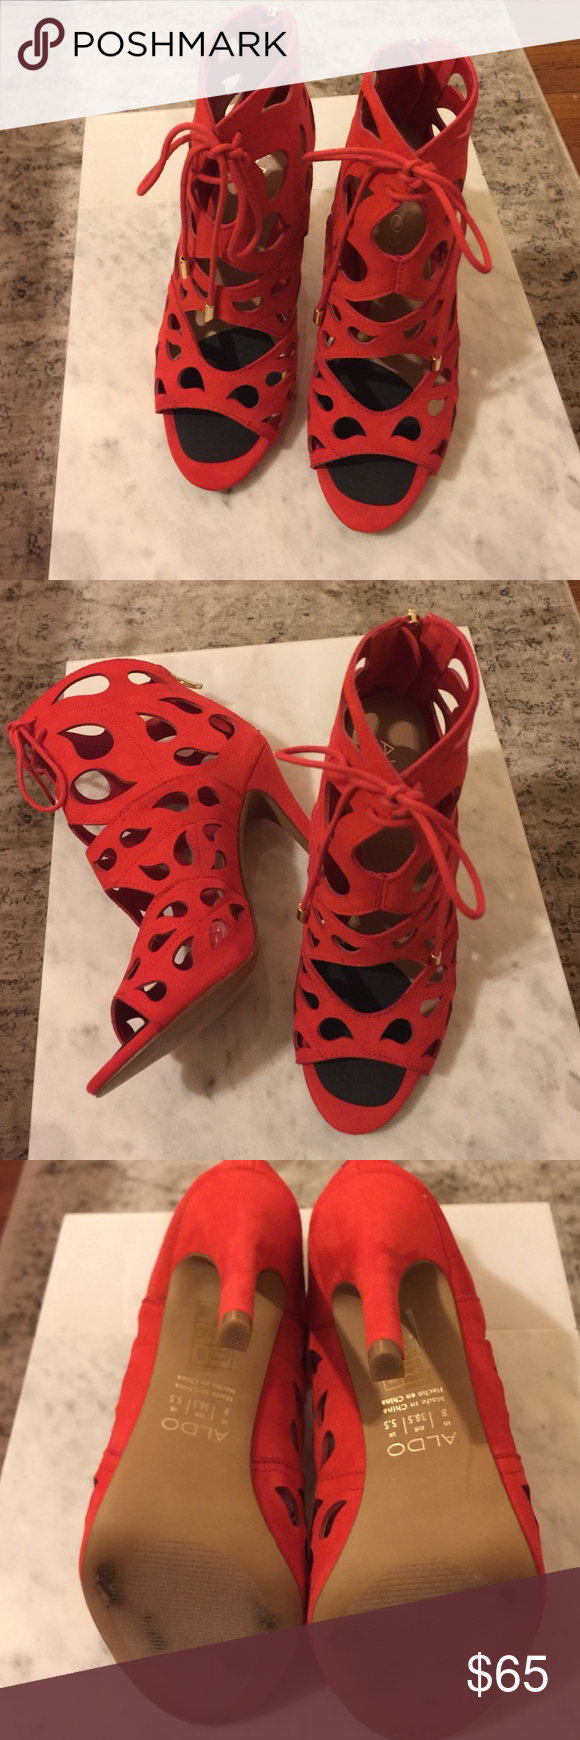 Aldo Lace Up Bootie Lace Up Cut Out Aldo heels. Leather and I added the foot cushion. Great condition. Tried to wear out once , but didn't get the right size for me. ALDO Shoes Ankle Boots & Booties